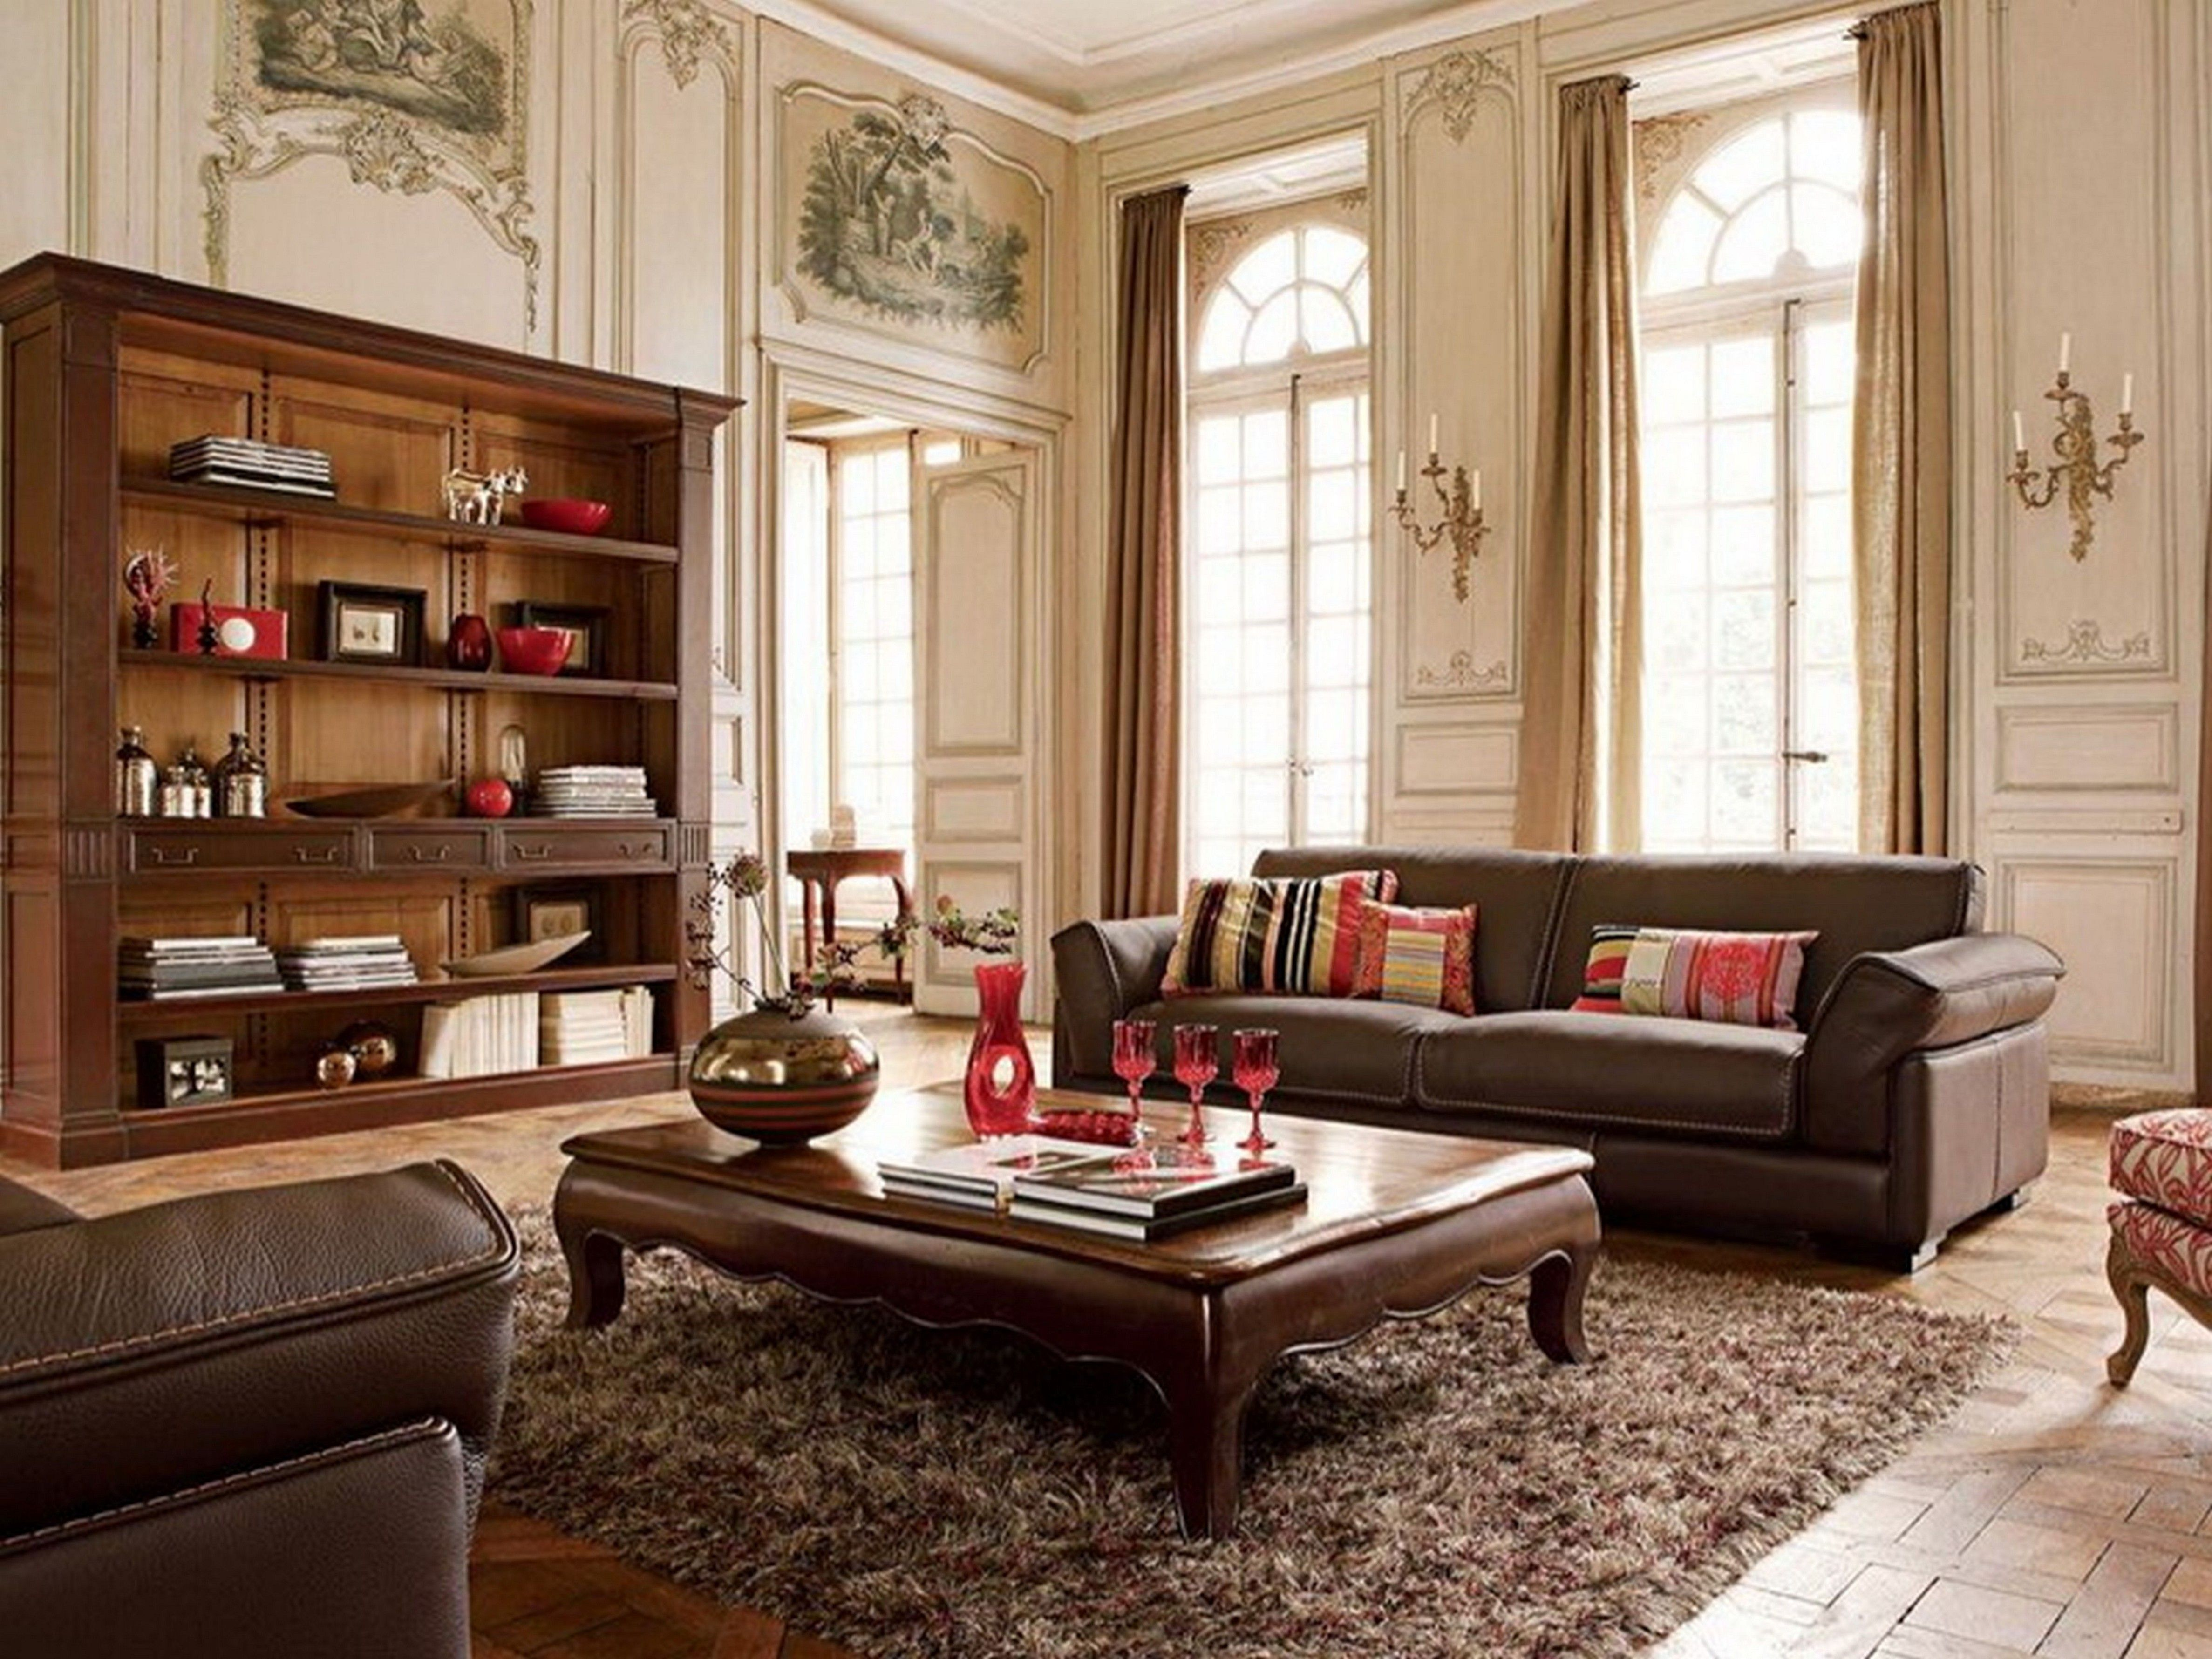 If You Are A Grand Type Of Person Living Lifestyle Need To See These 68 Interior Designs For Rooms Pronto